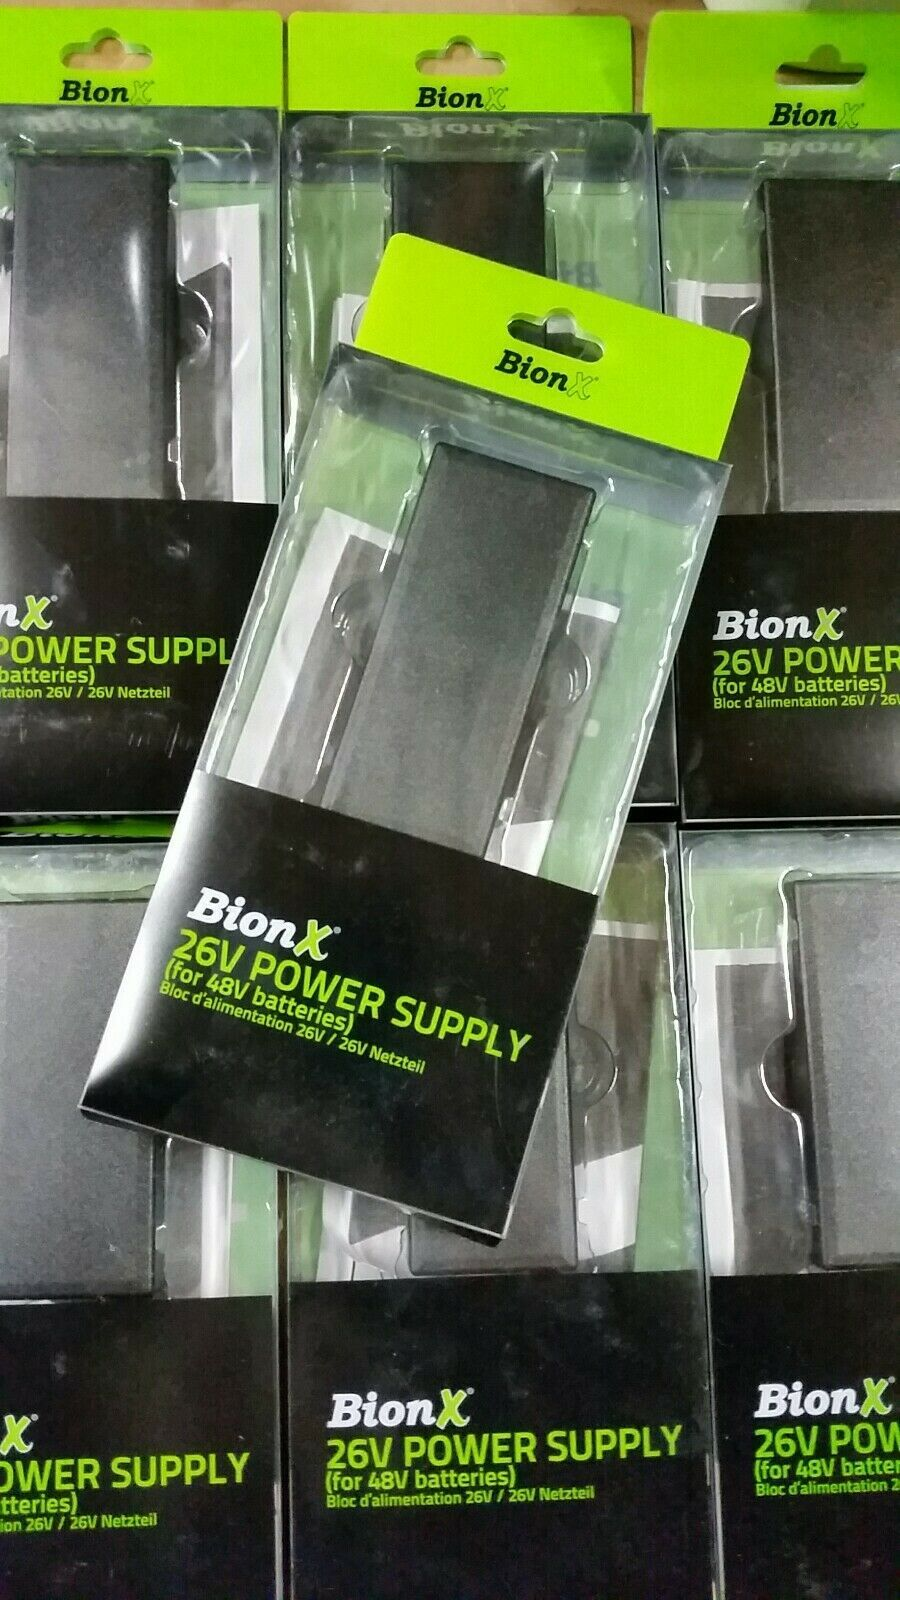 BionX 26V Power Supply/Charger for BionX 48V Batteries-BionX-Voltaire Cycles of New Jersey